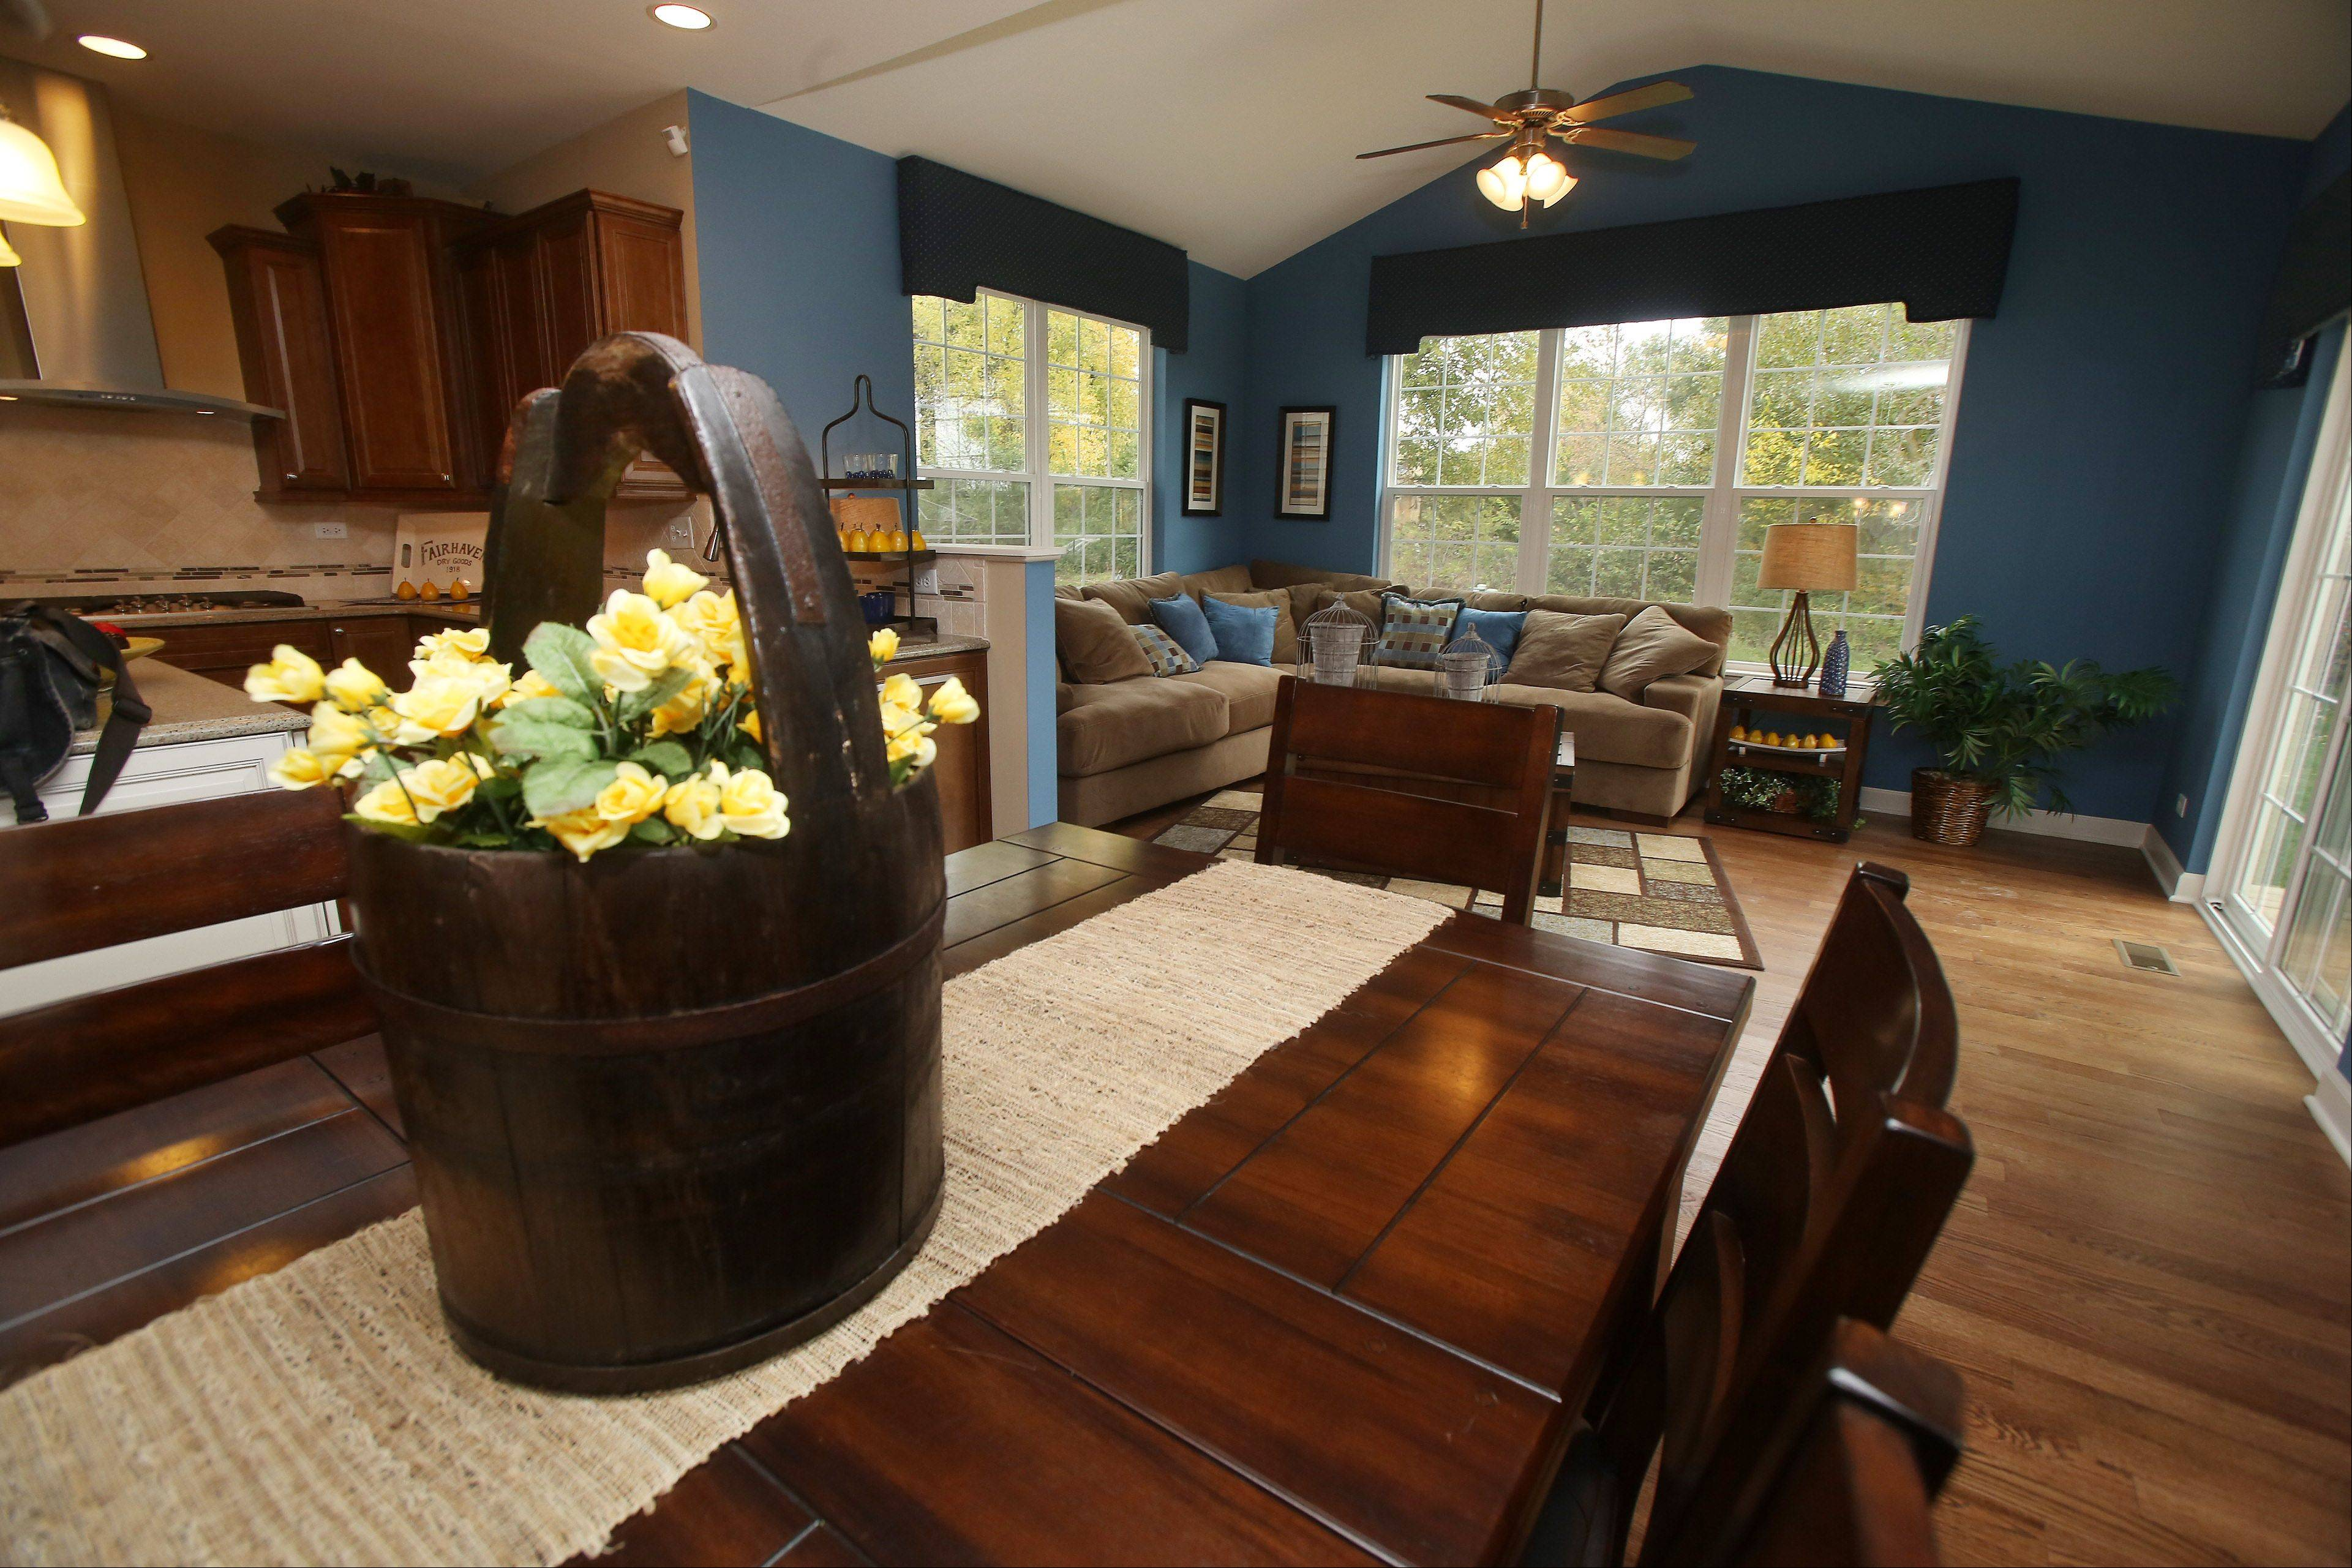 An eat-in kitchen overlooks a family room in the Jasper model home in Walnut Glen.